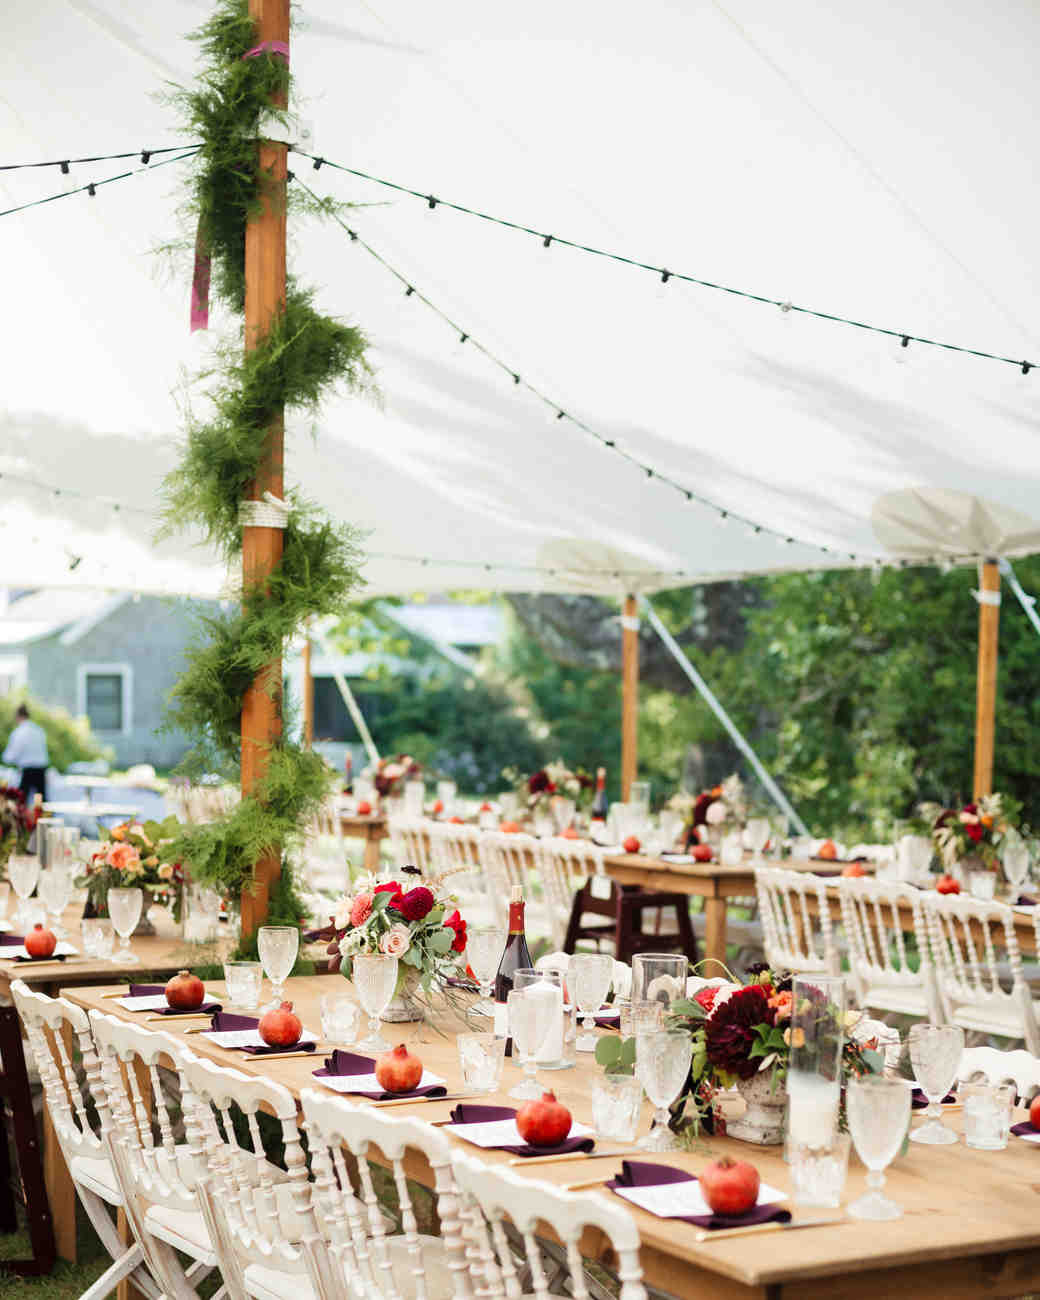 28 Tent Decorating Ideas That Will Upgrade Your Wedding Reception | Martha Stewart Weddings : wedding reception tent - memphite.com